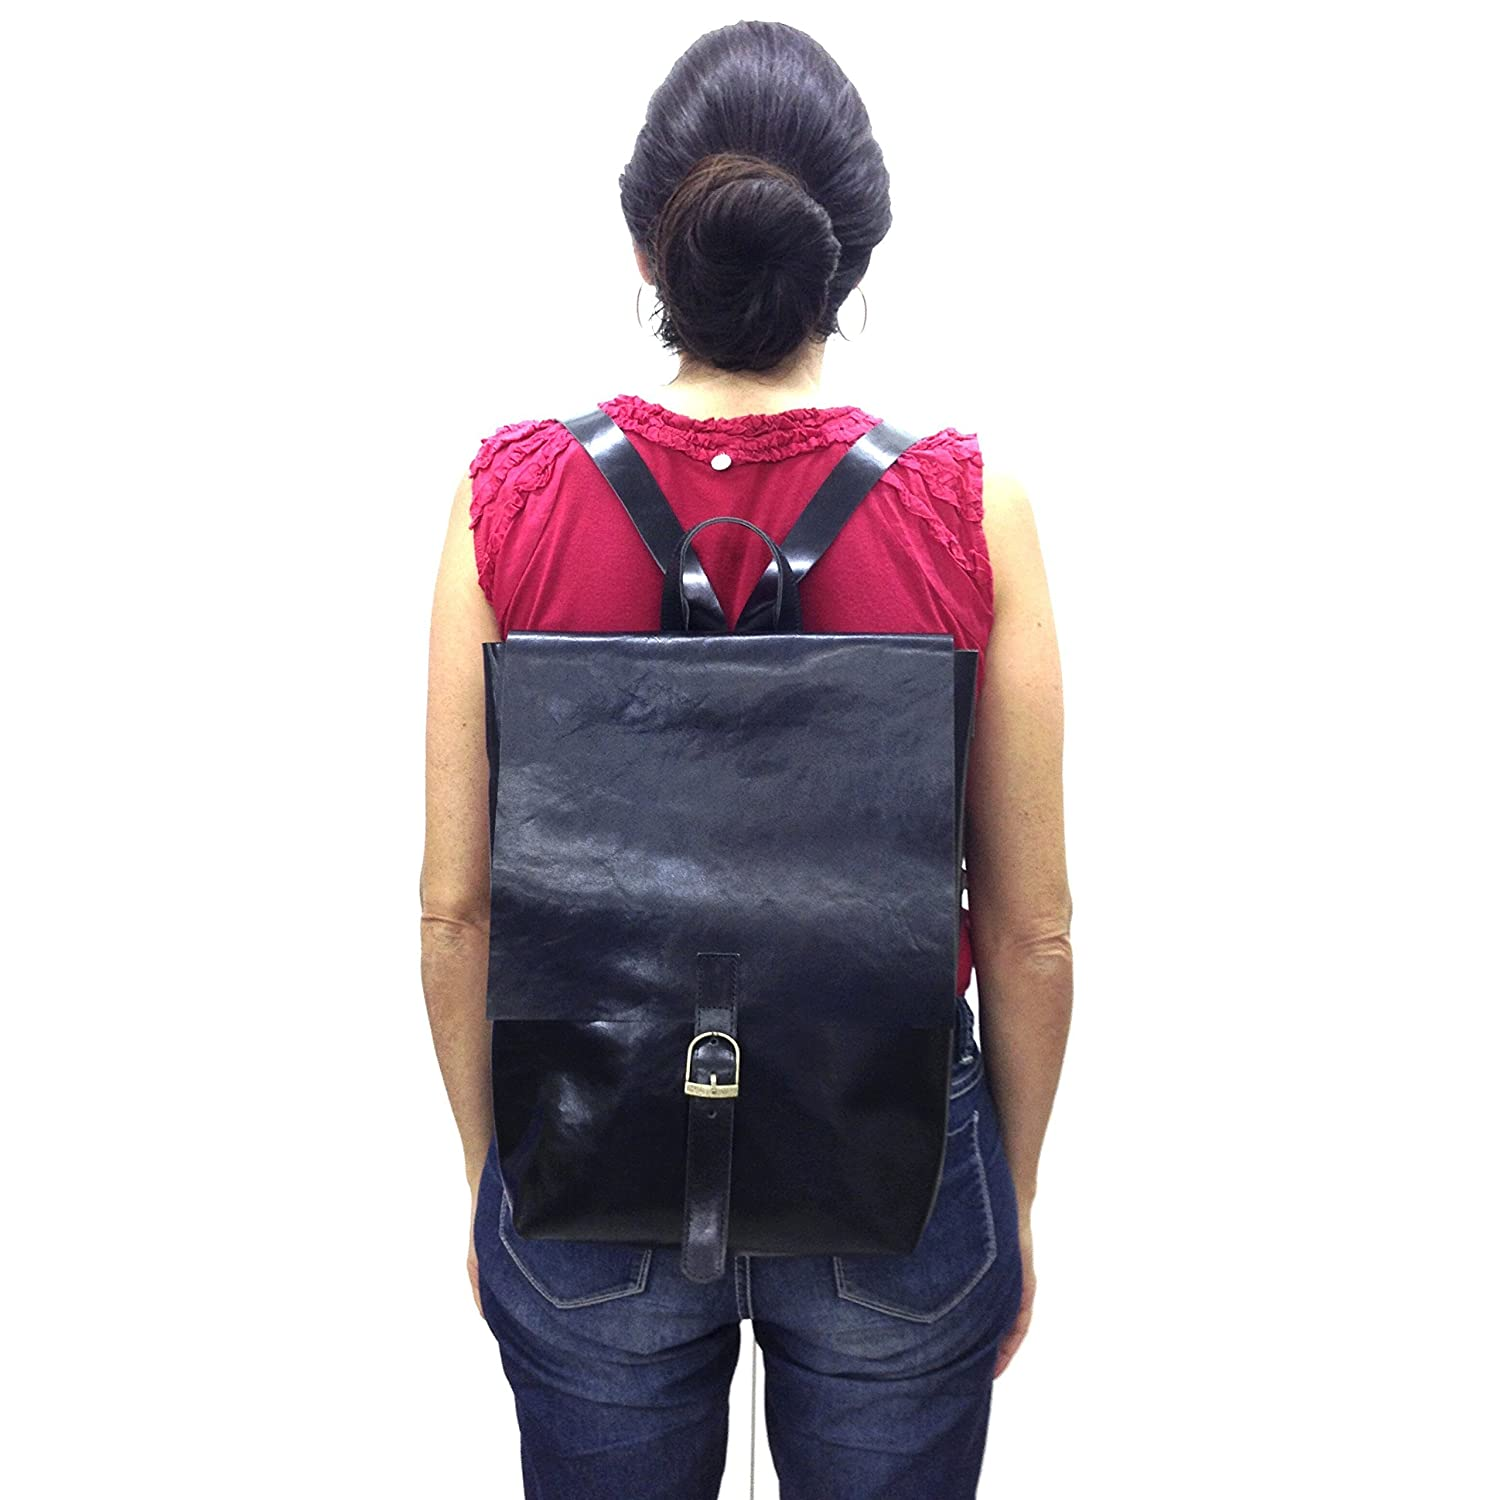 a0ae0c58a Amazon.com: Medium Black leather Backpack Women's rucksack bag buckled  sturdy satchel up to 13 - 14 laptop size: Handmade